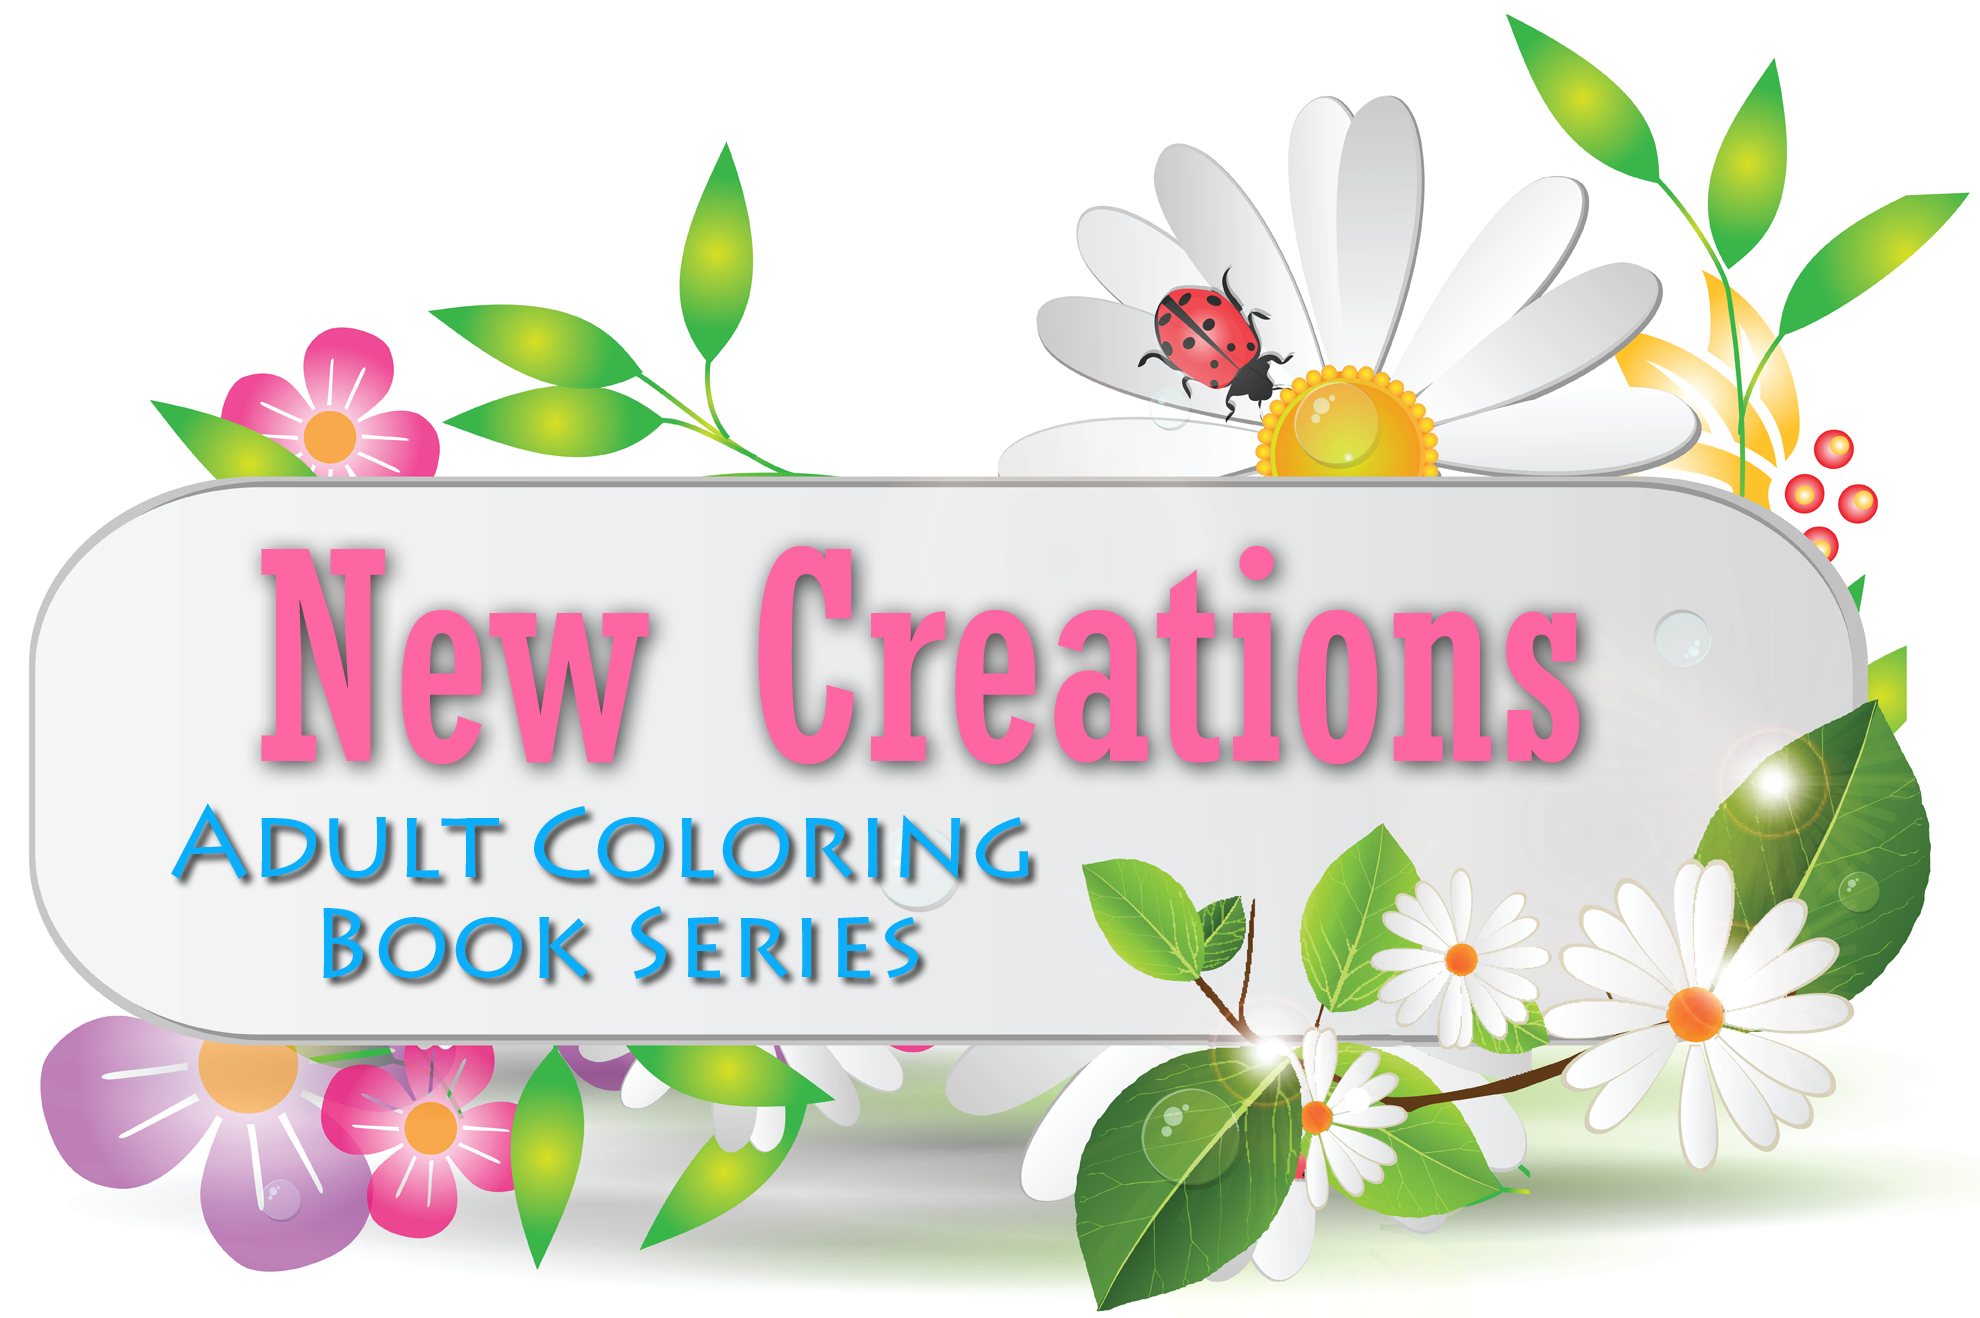 New Creations Coloring Books